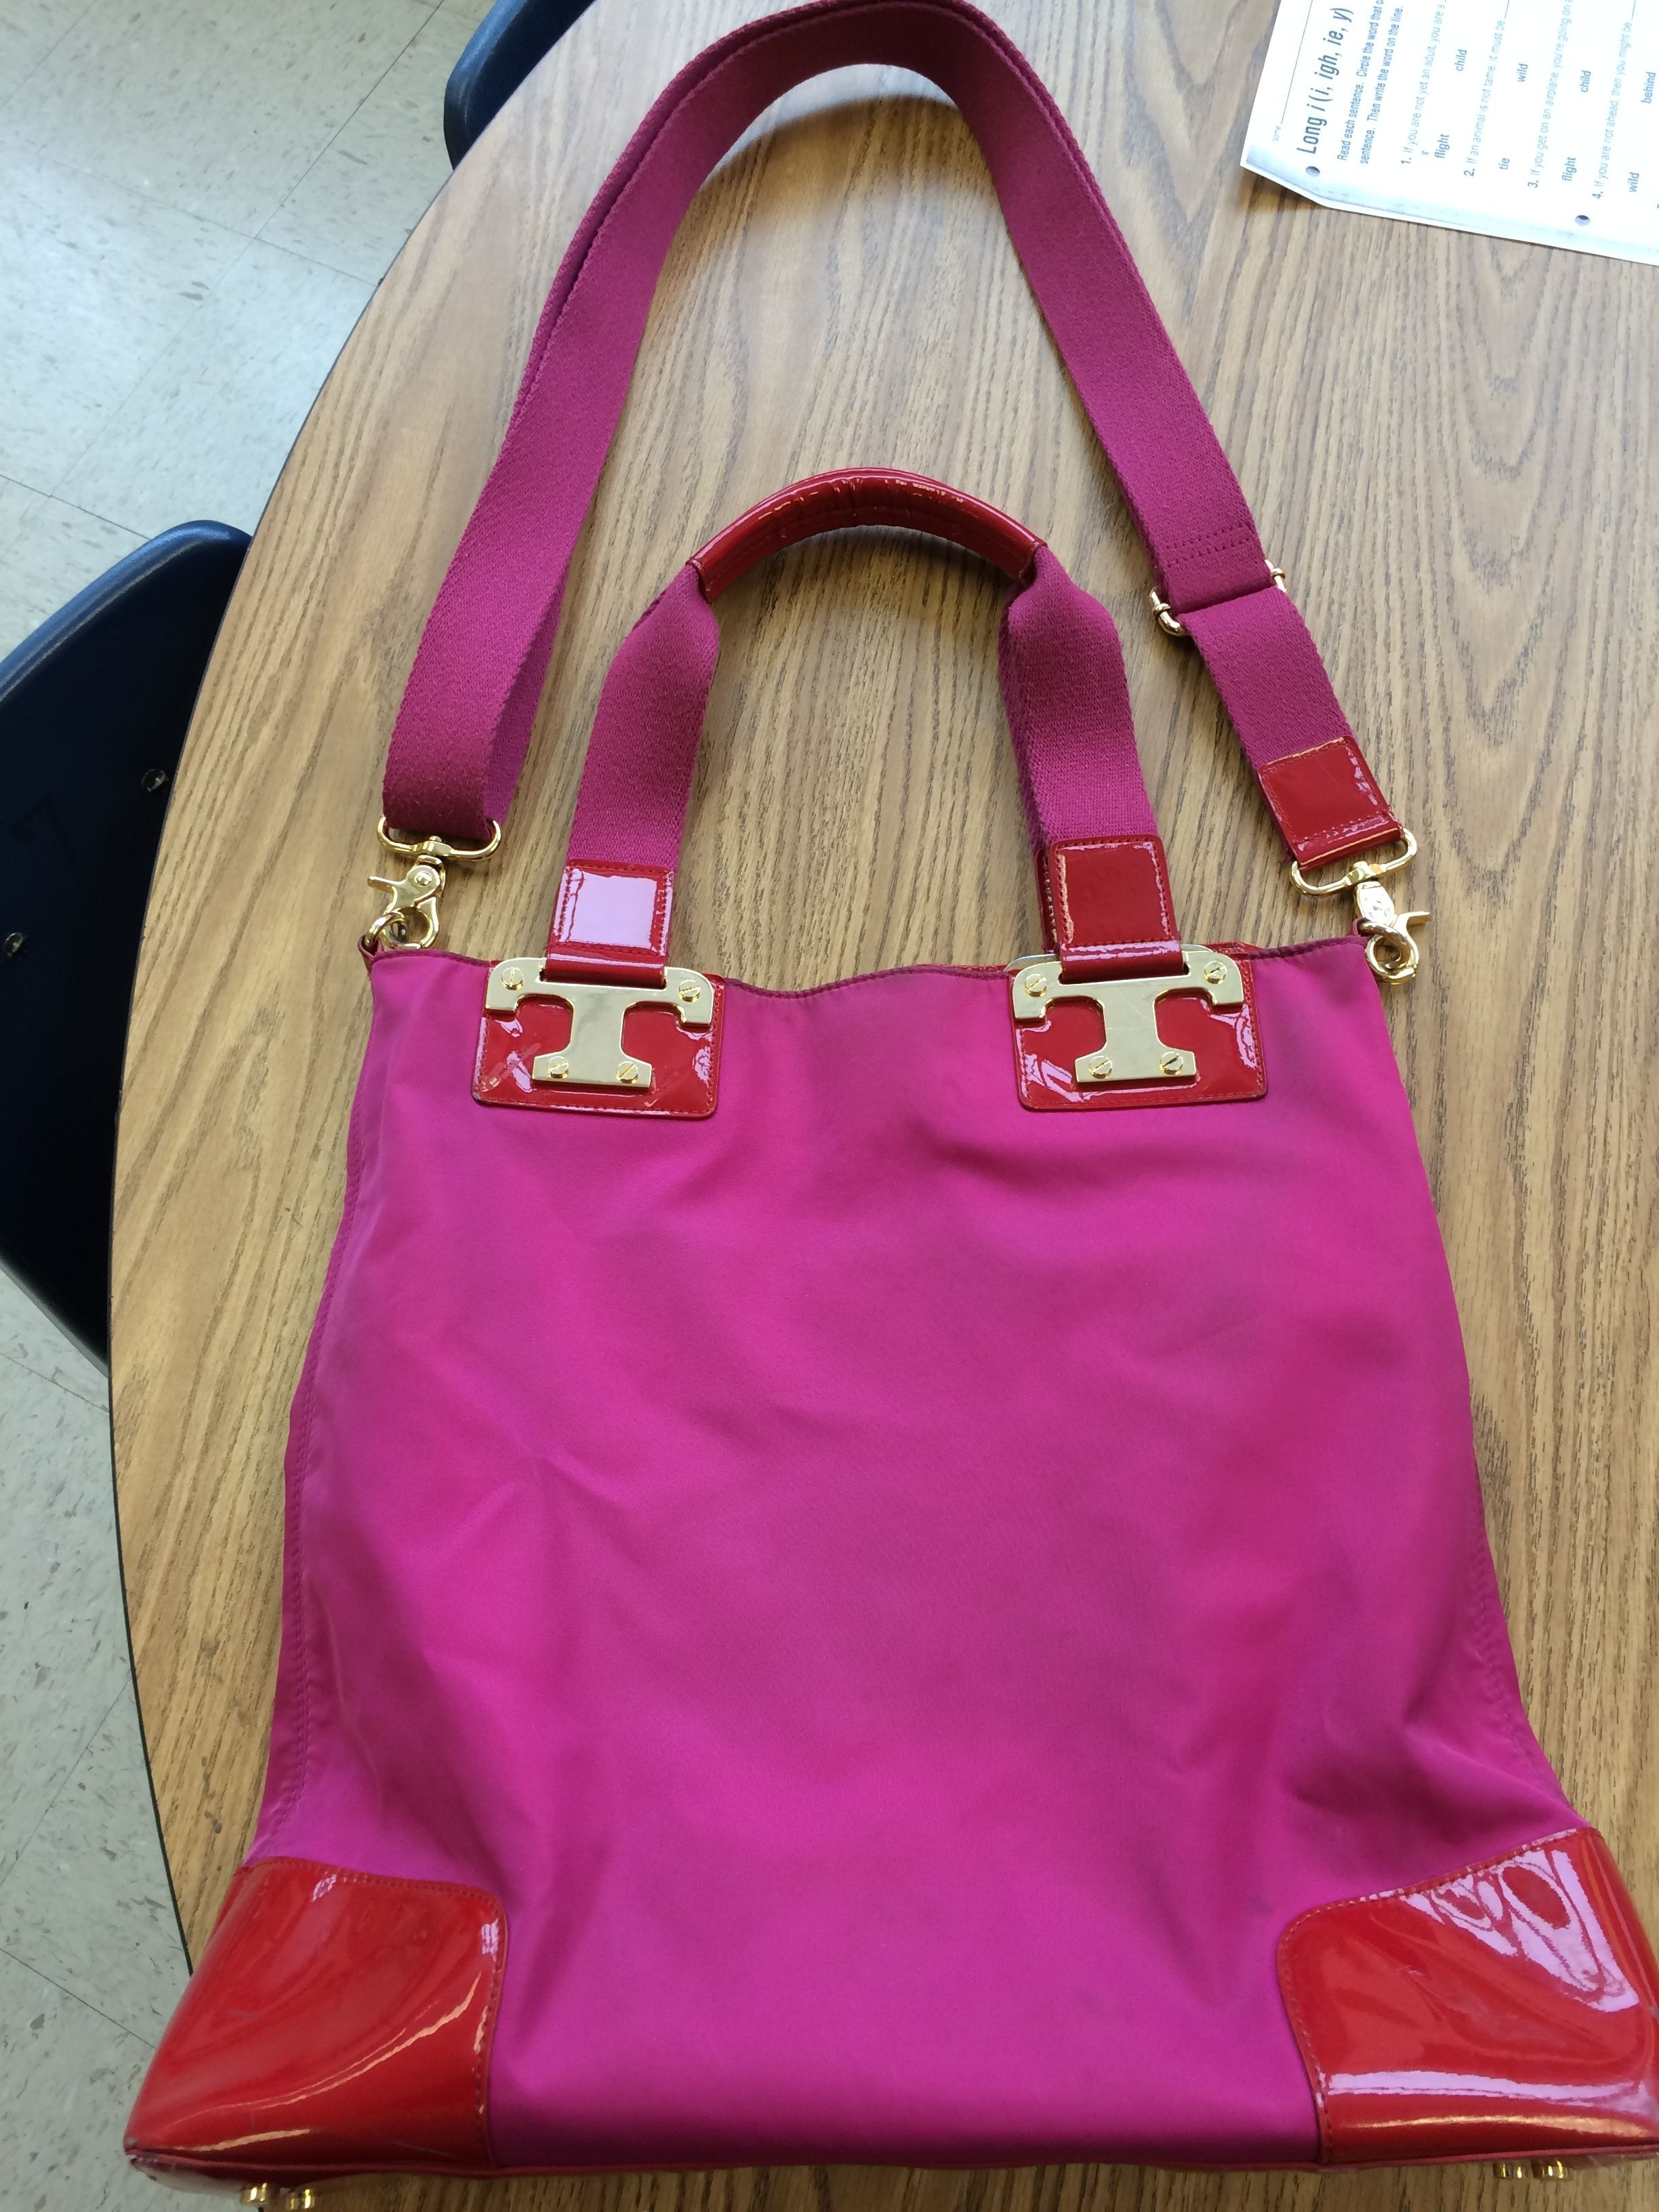 Tory Burch Isla Convertible Crossbody Pink & Red Tote Bag. Get one of the hottest styles of the season! The Tory Burch Isla Convertible Crossbody Pink & Red Tote Bag is a top 10 member favorite on Tradesy. Save on yours before they're sold out!